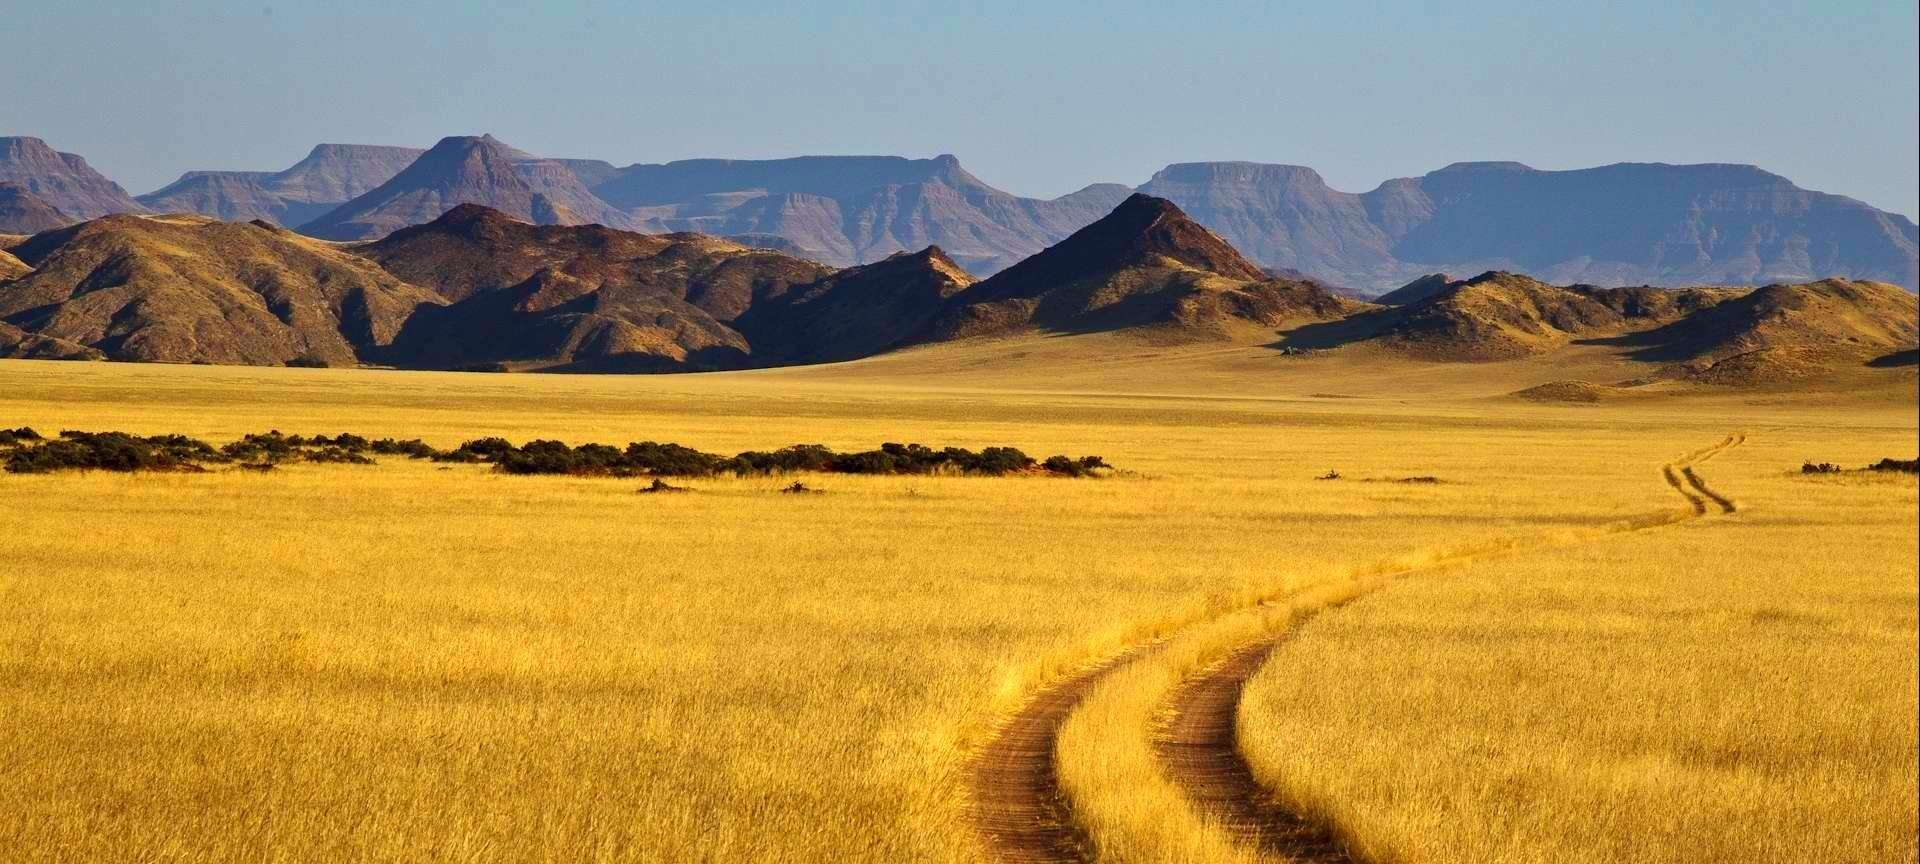 Wildlife at Damaraland Camp - Image by Wilderness Safaris Colourful ...